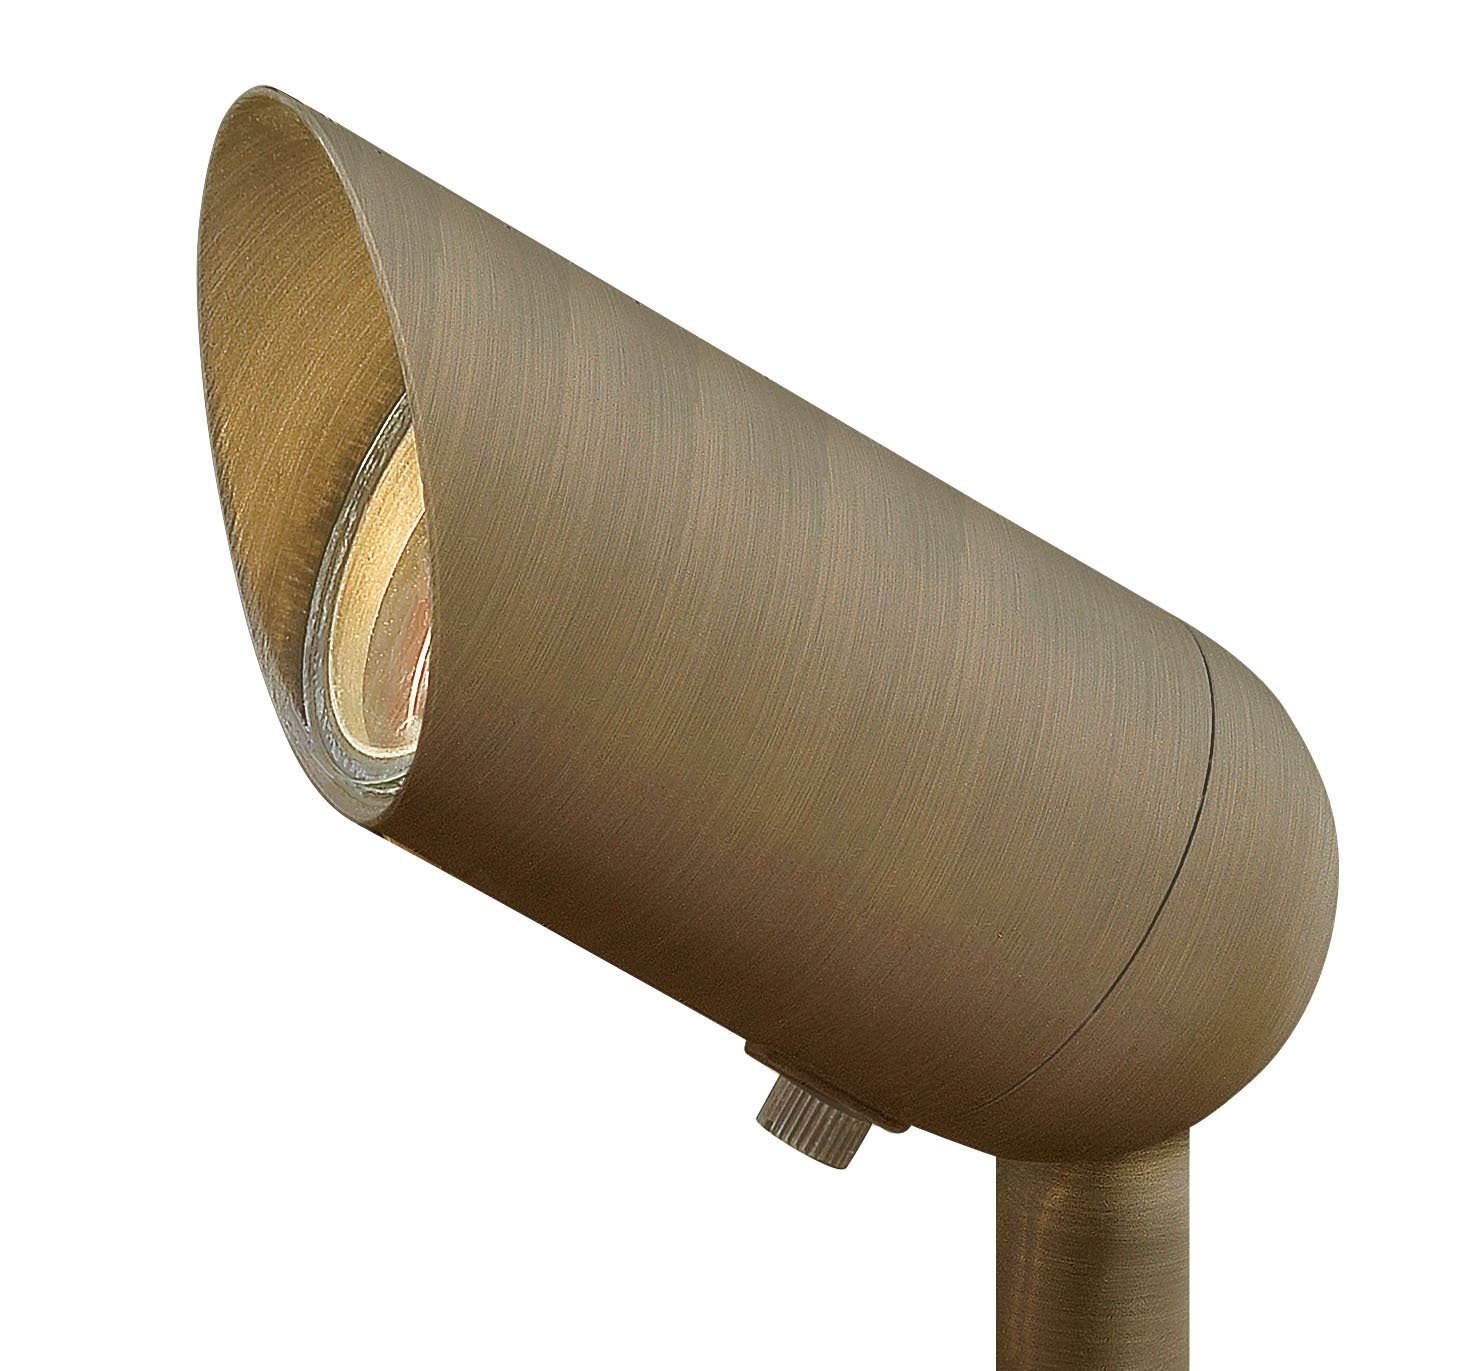 Hinkley Lighting 1536MZ-3WLEDFL Led Spot Light, Matte Bronze by Hinkley